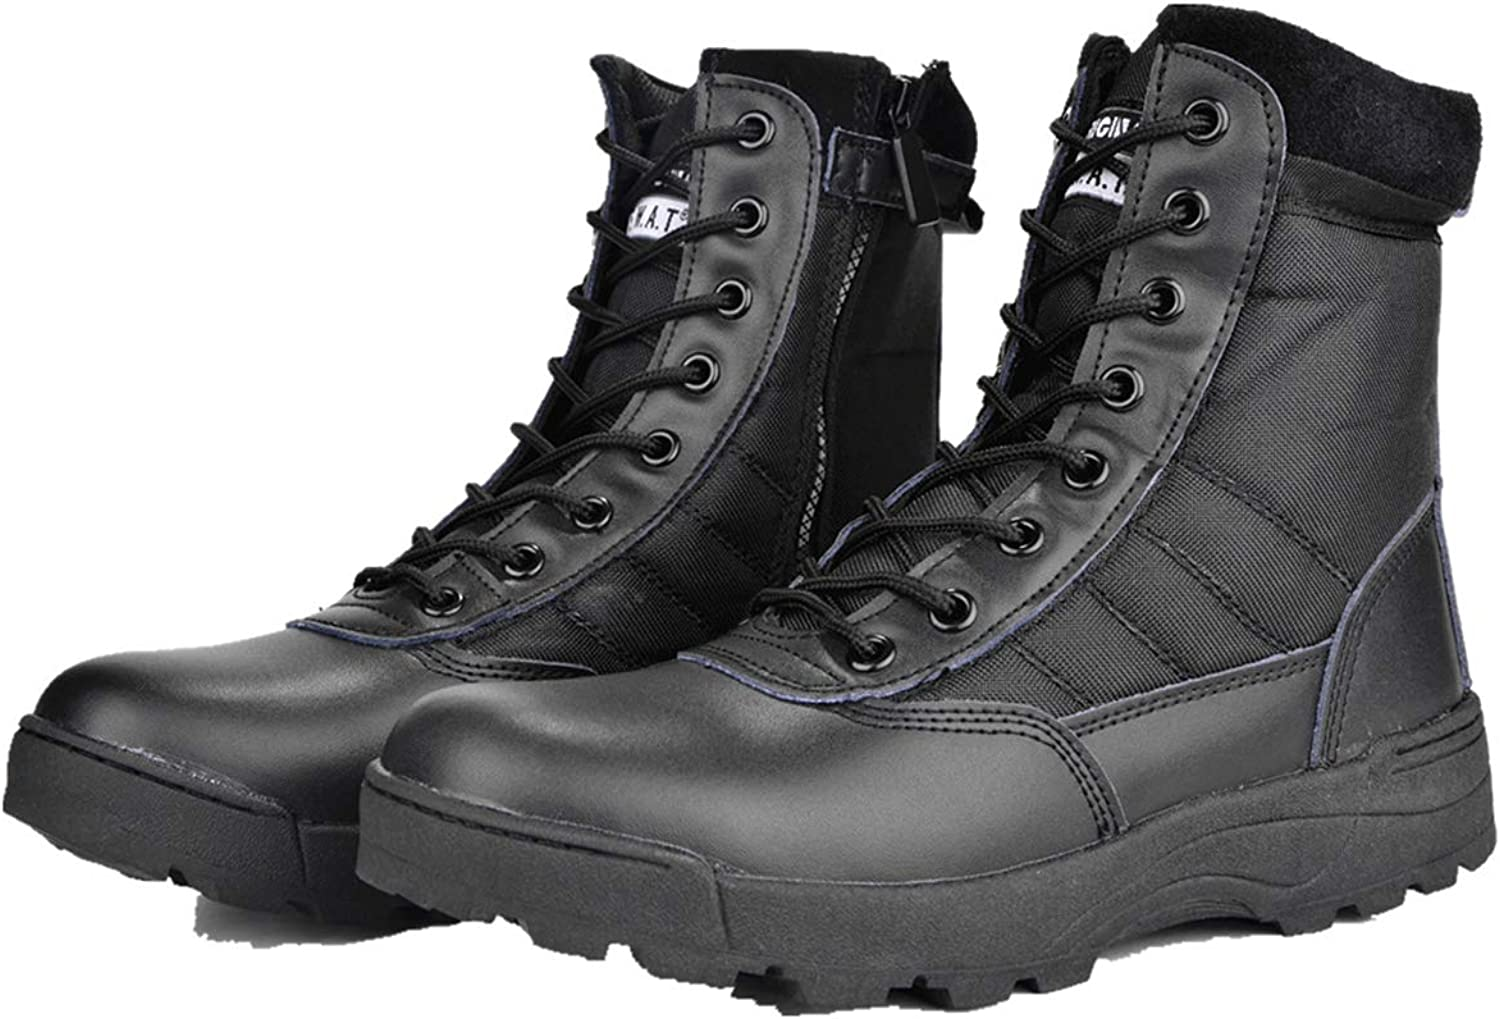 Combat Boots G-13 Leather Side Zip Army Tactical Boots Delta Military Work Army shoes Safety Ankle Boots Breathable Commando Outdoor Desert Tactical Military Patrol Boots